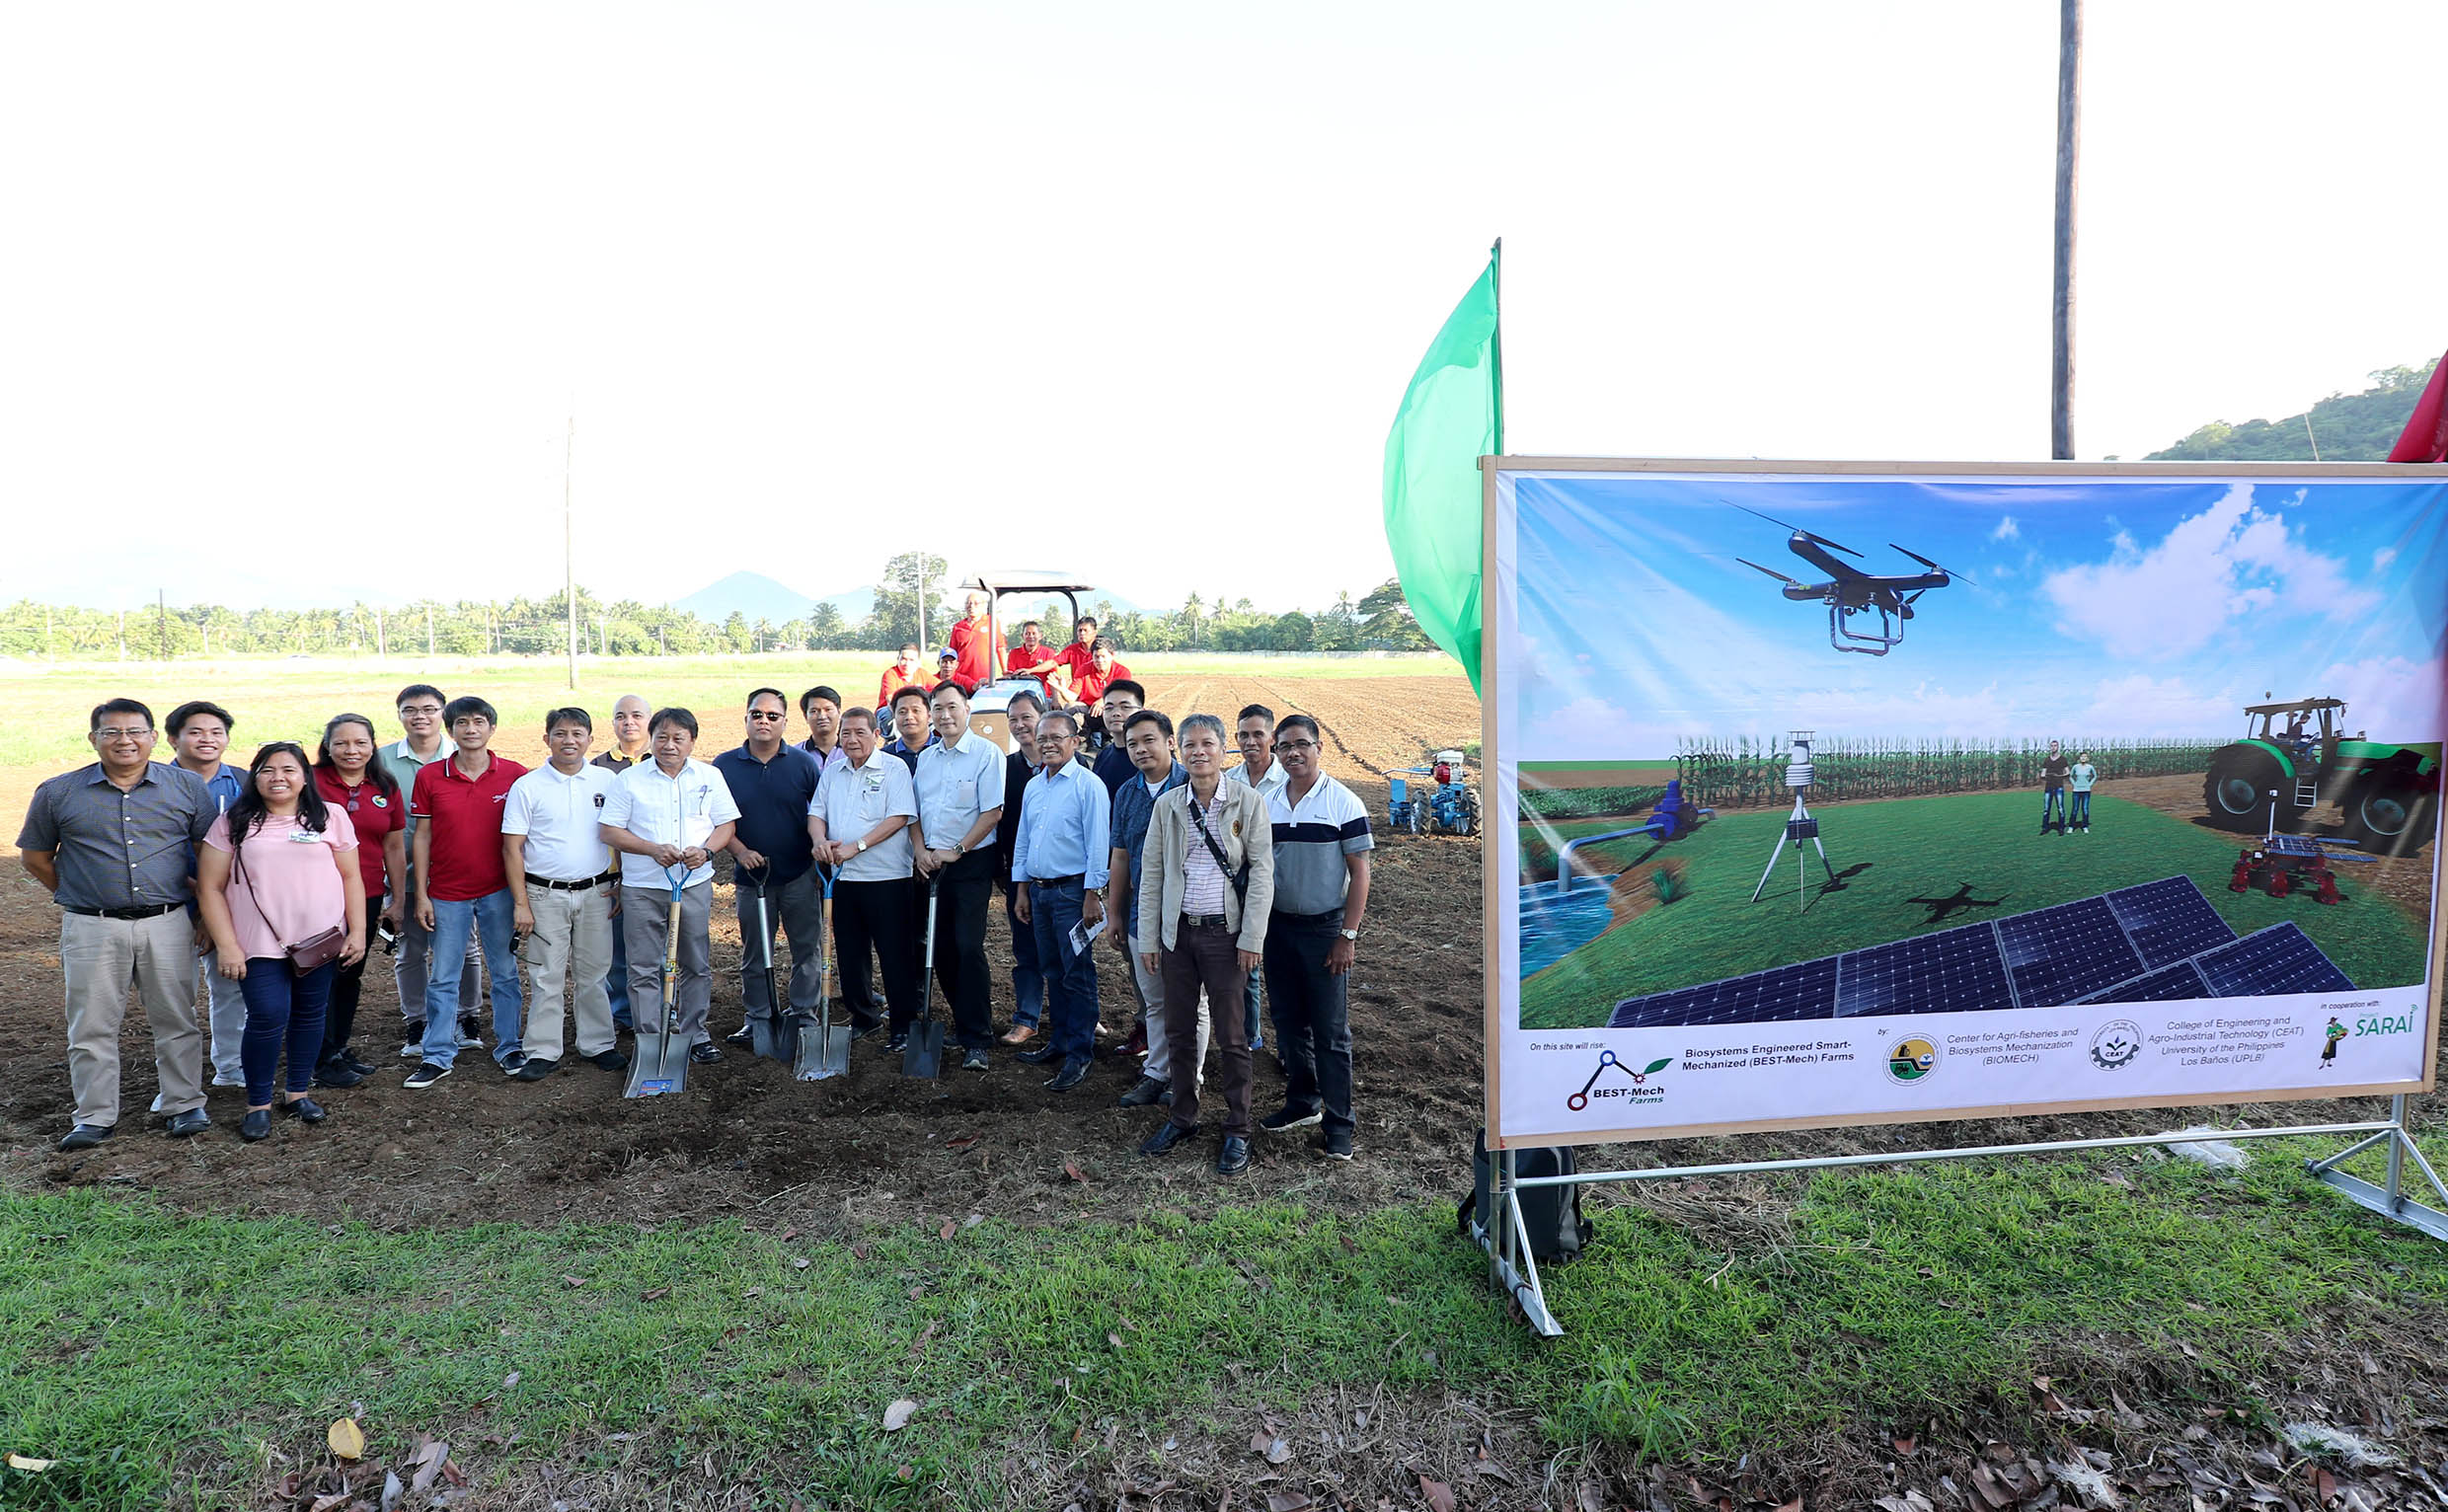 CEAT-BIOMECH aims for a smart farming facility